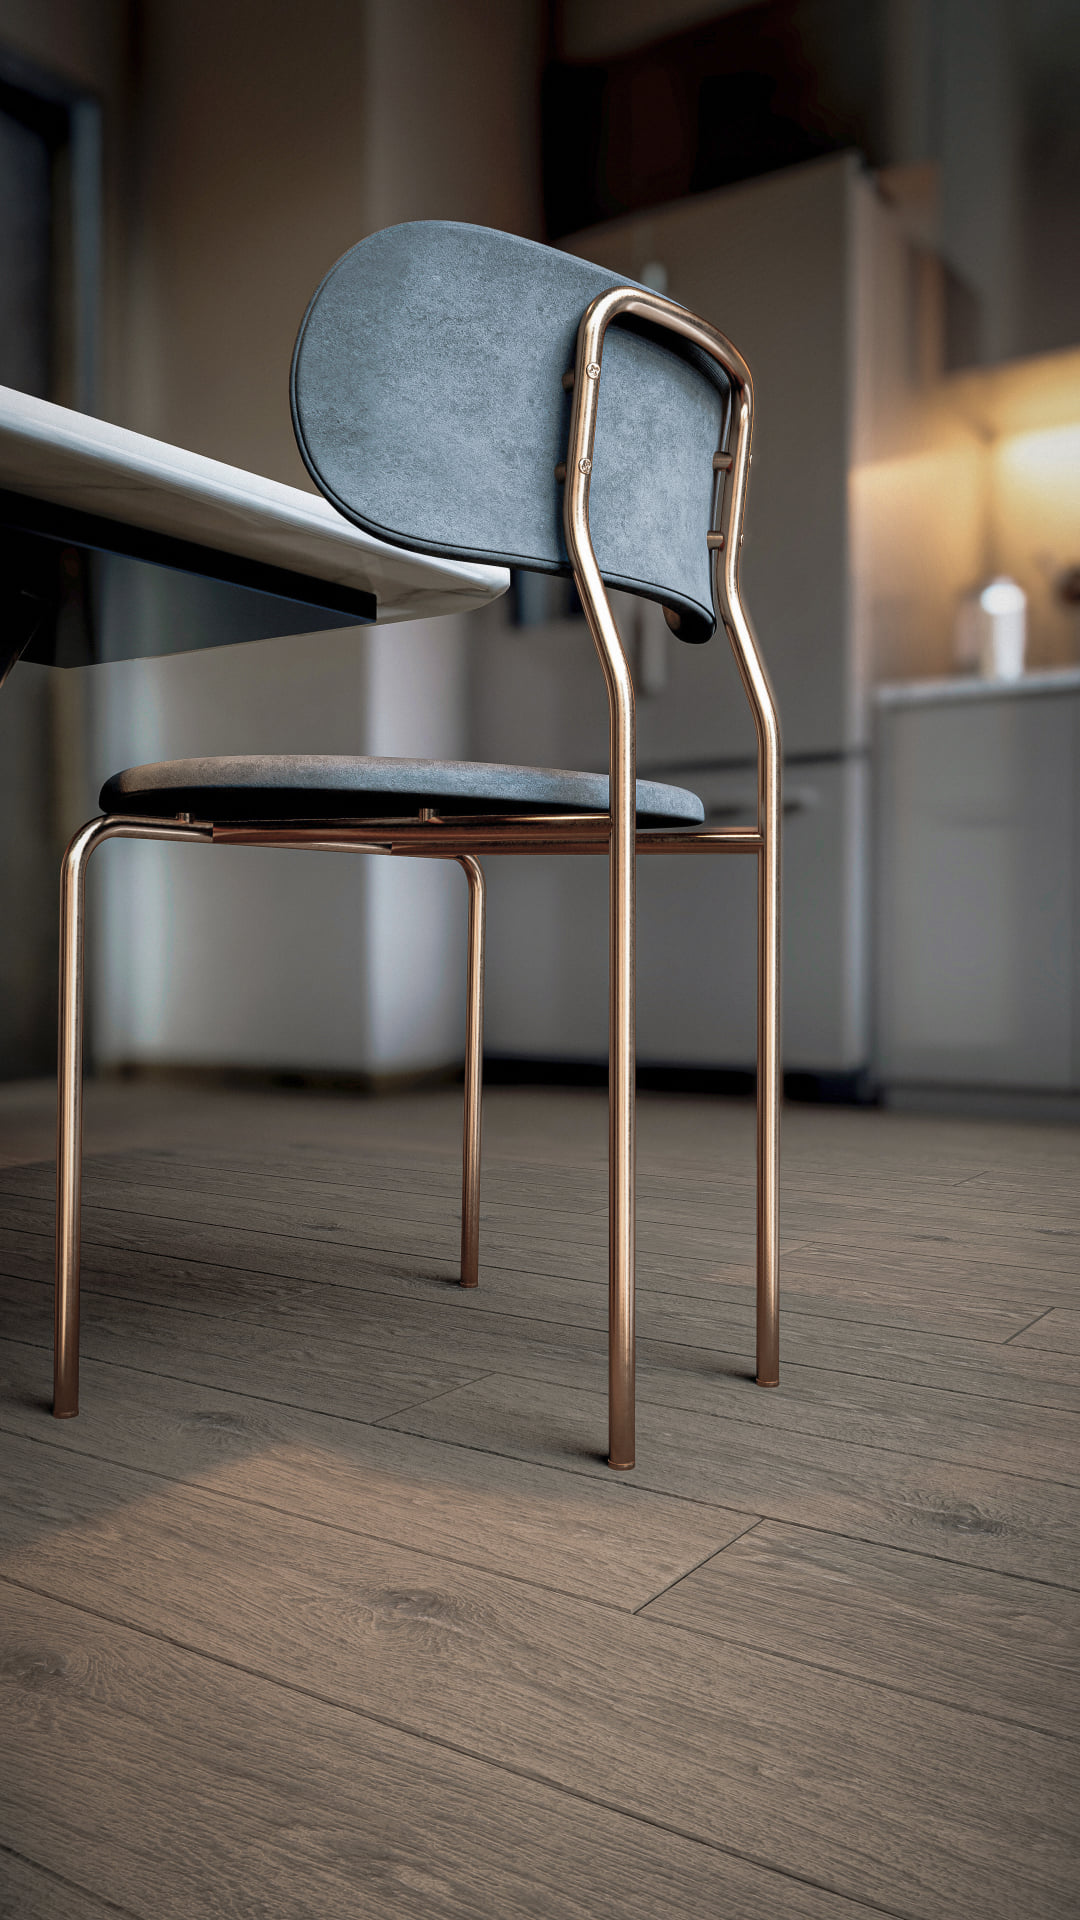 Chair on wooden floor, rendered in Lumion 11 by 3D Fernandes